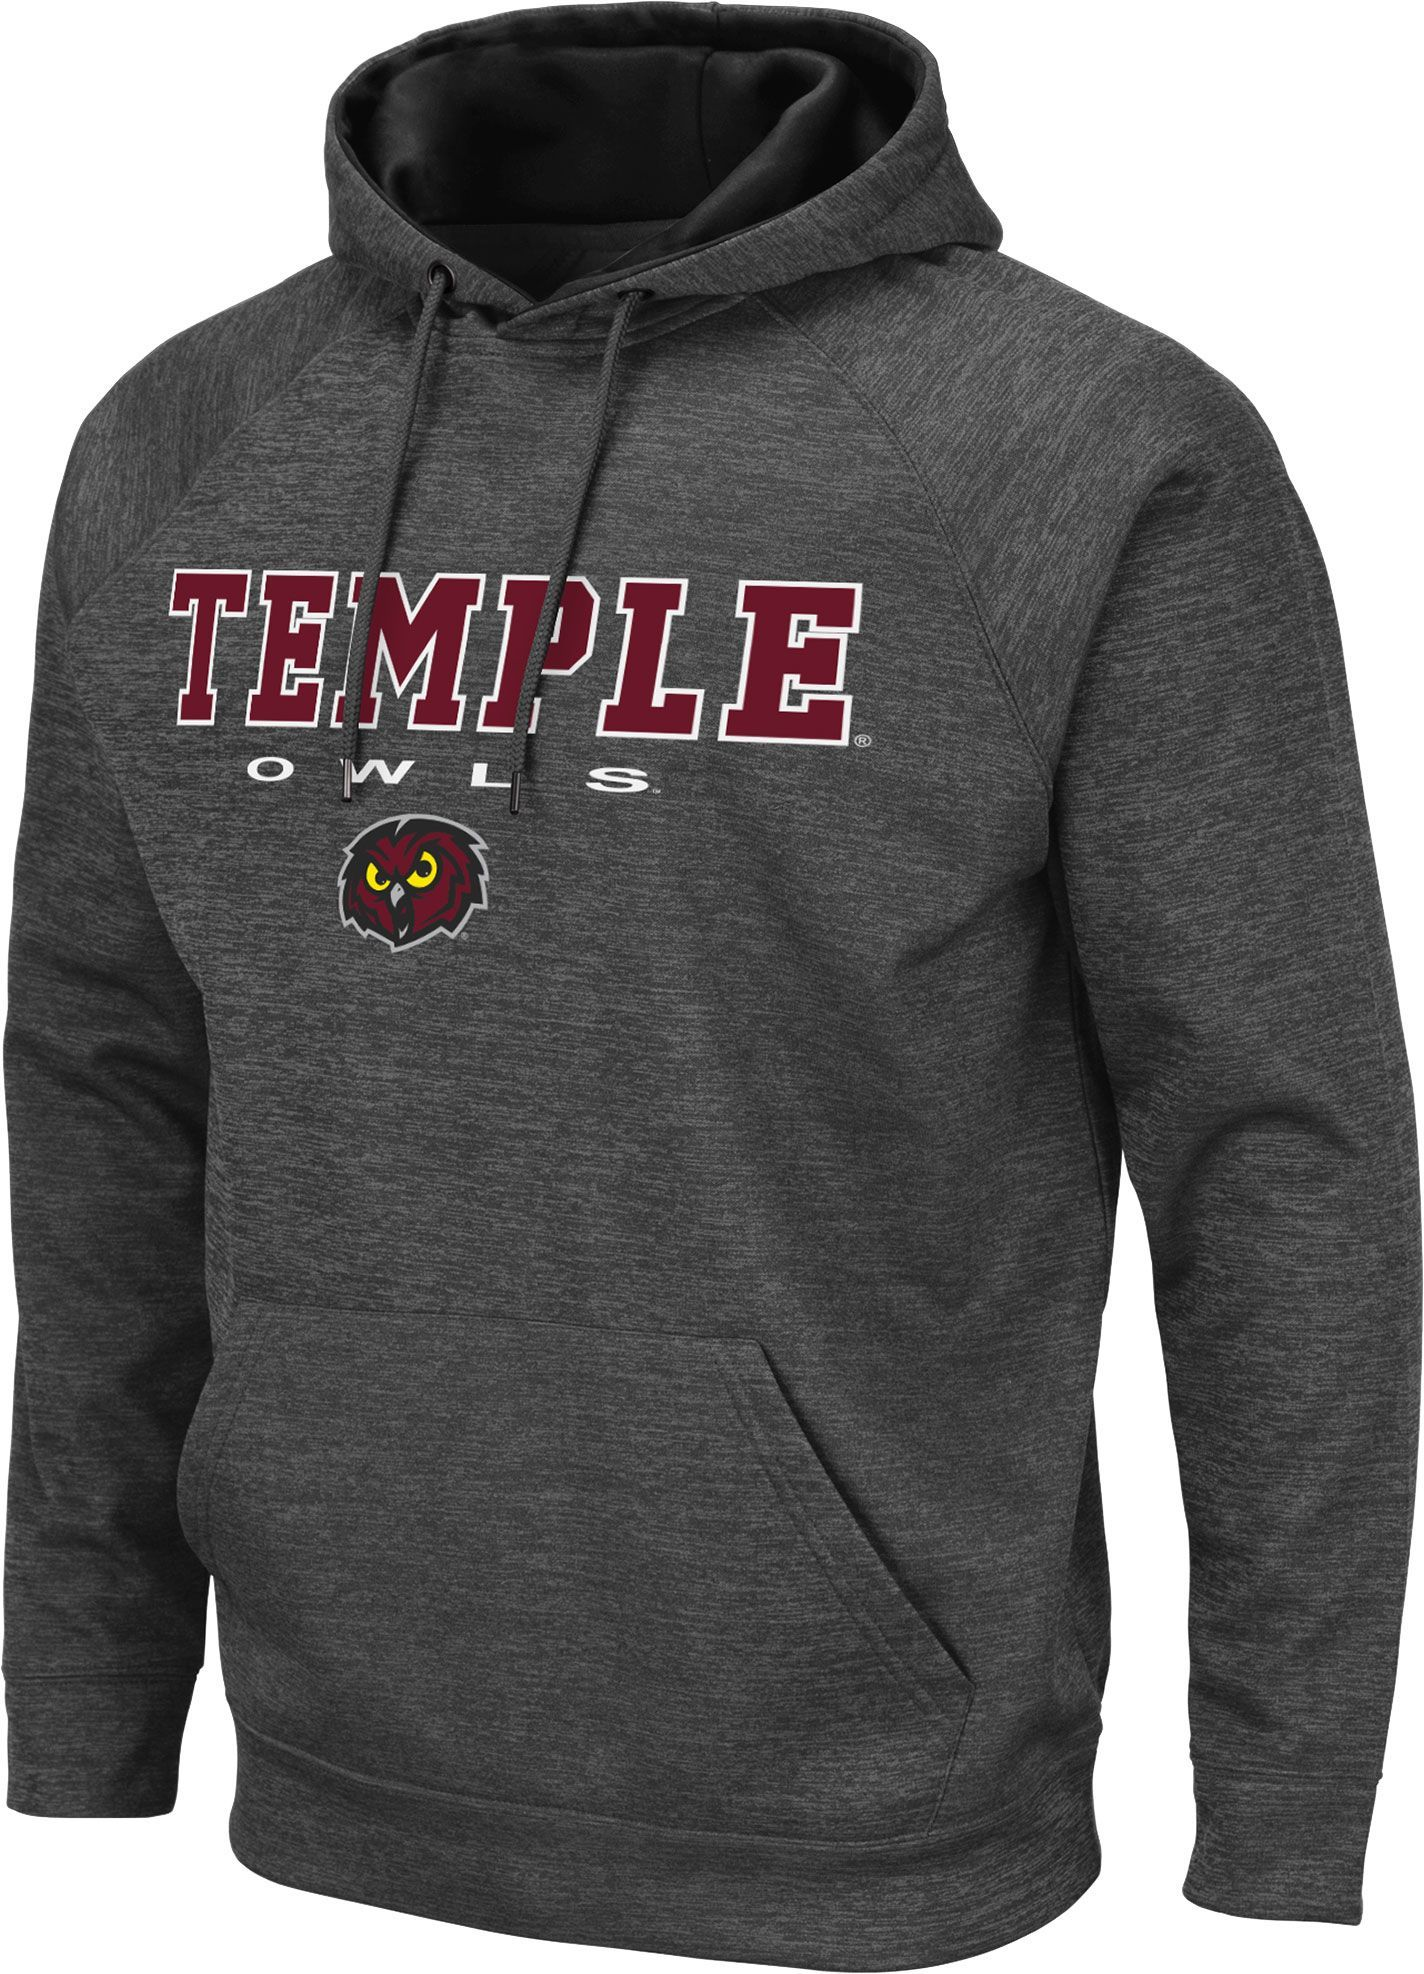 2bca58b4 Colosseum Men's Temple Owls Grey Pullover Hoodie, Size: XXL, Gray